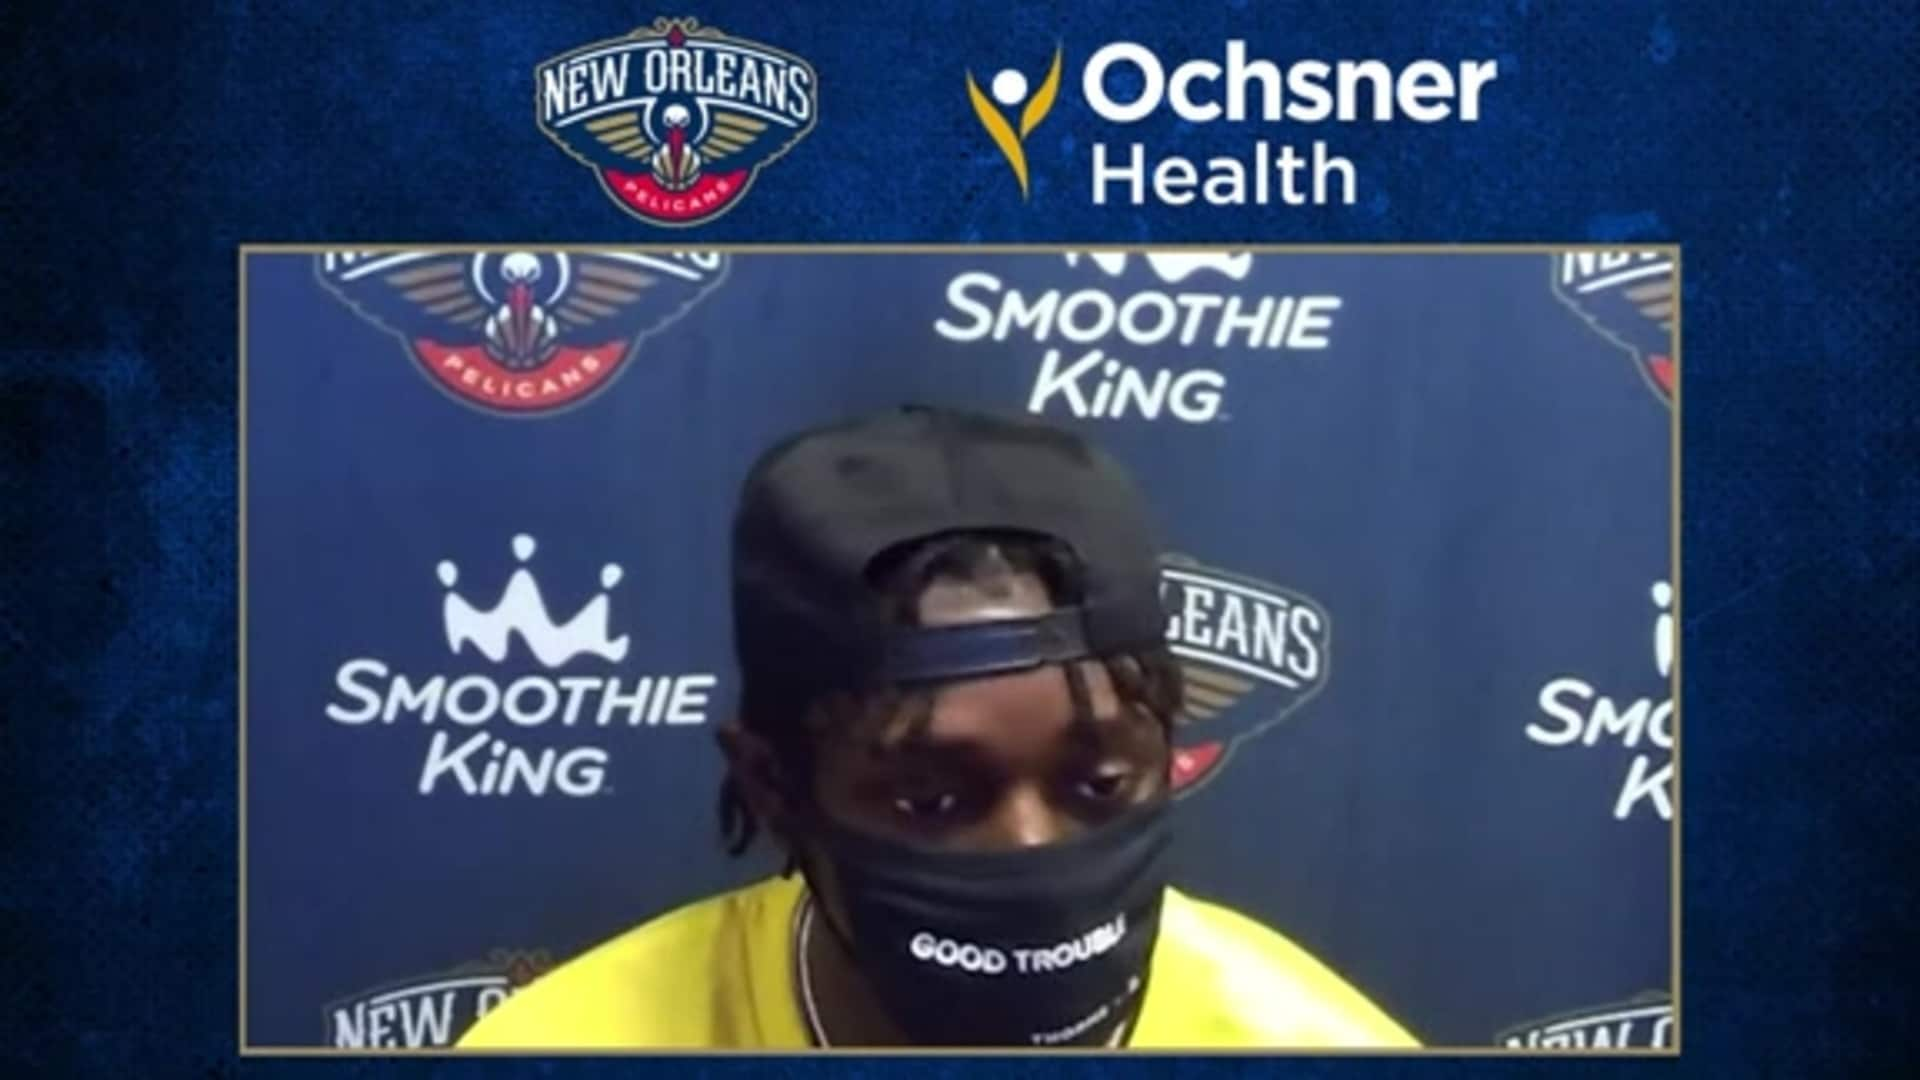 Pelicans Postgame Interview: Jrue Holiday on Pelicans' success vs. Memphis Grizzlies